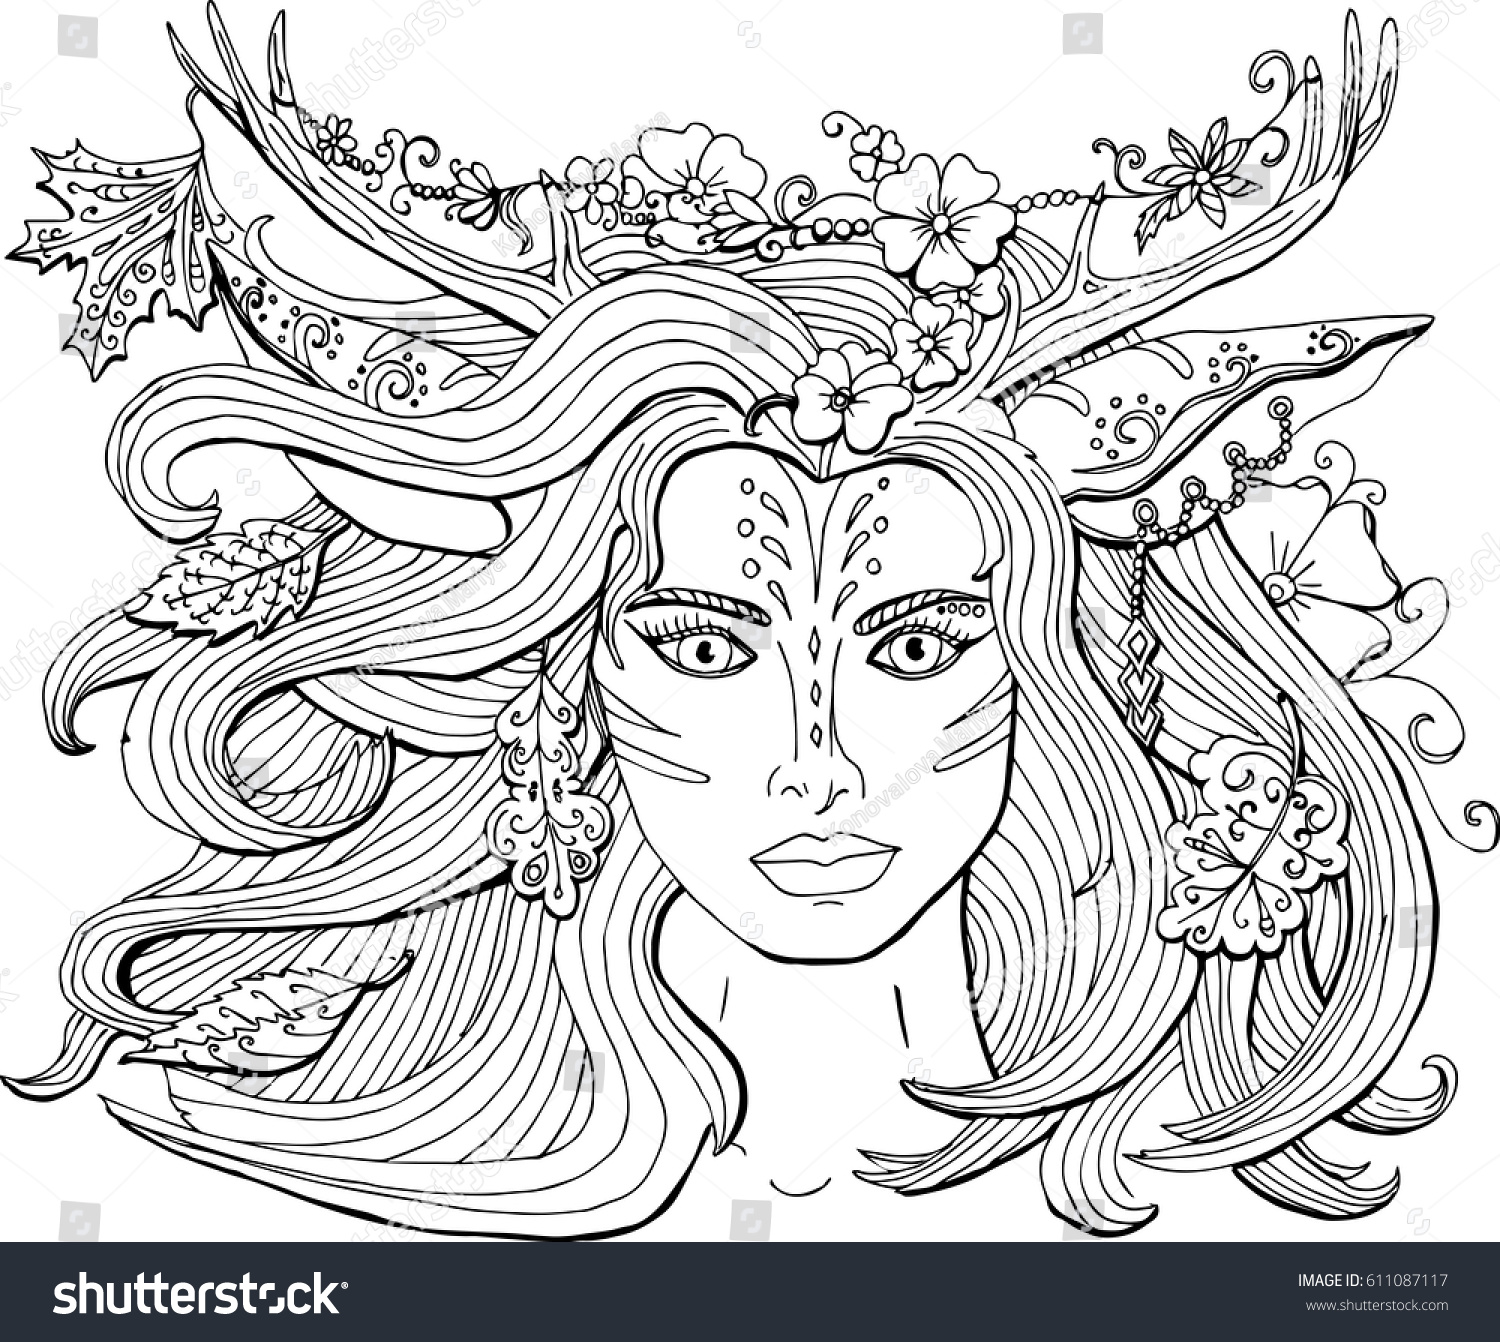 Vector coloring pages adults ornament beautiful stock Coloring books for young adults